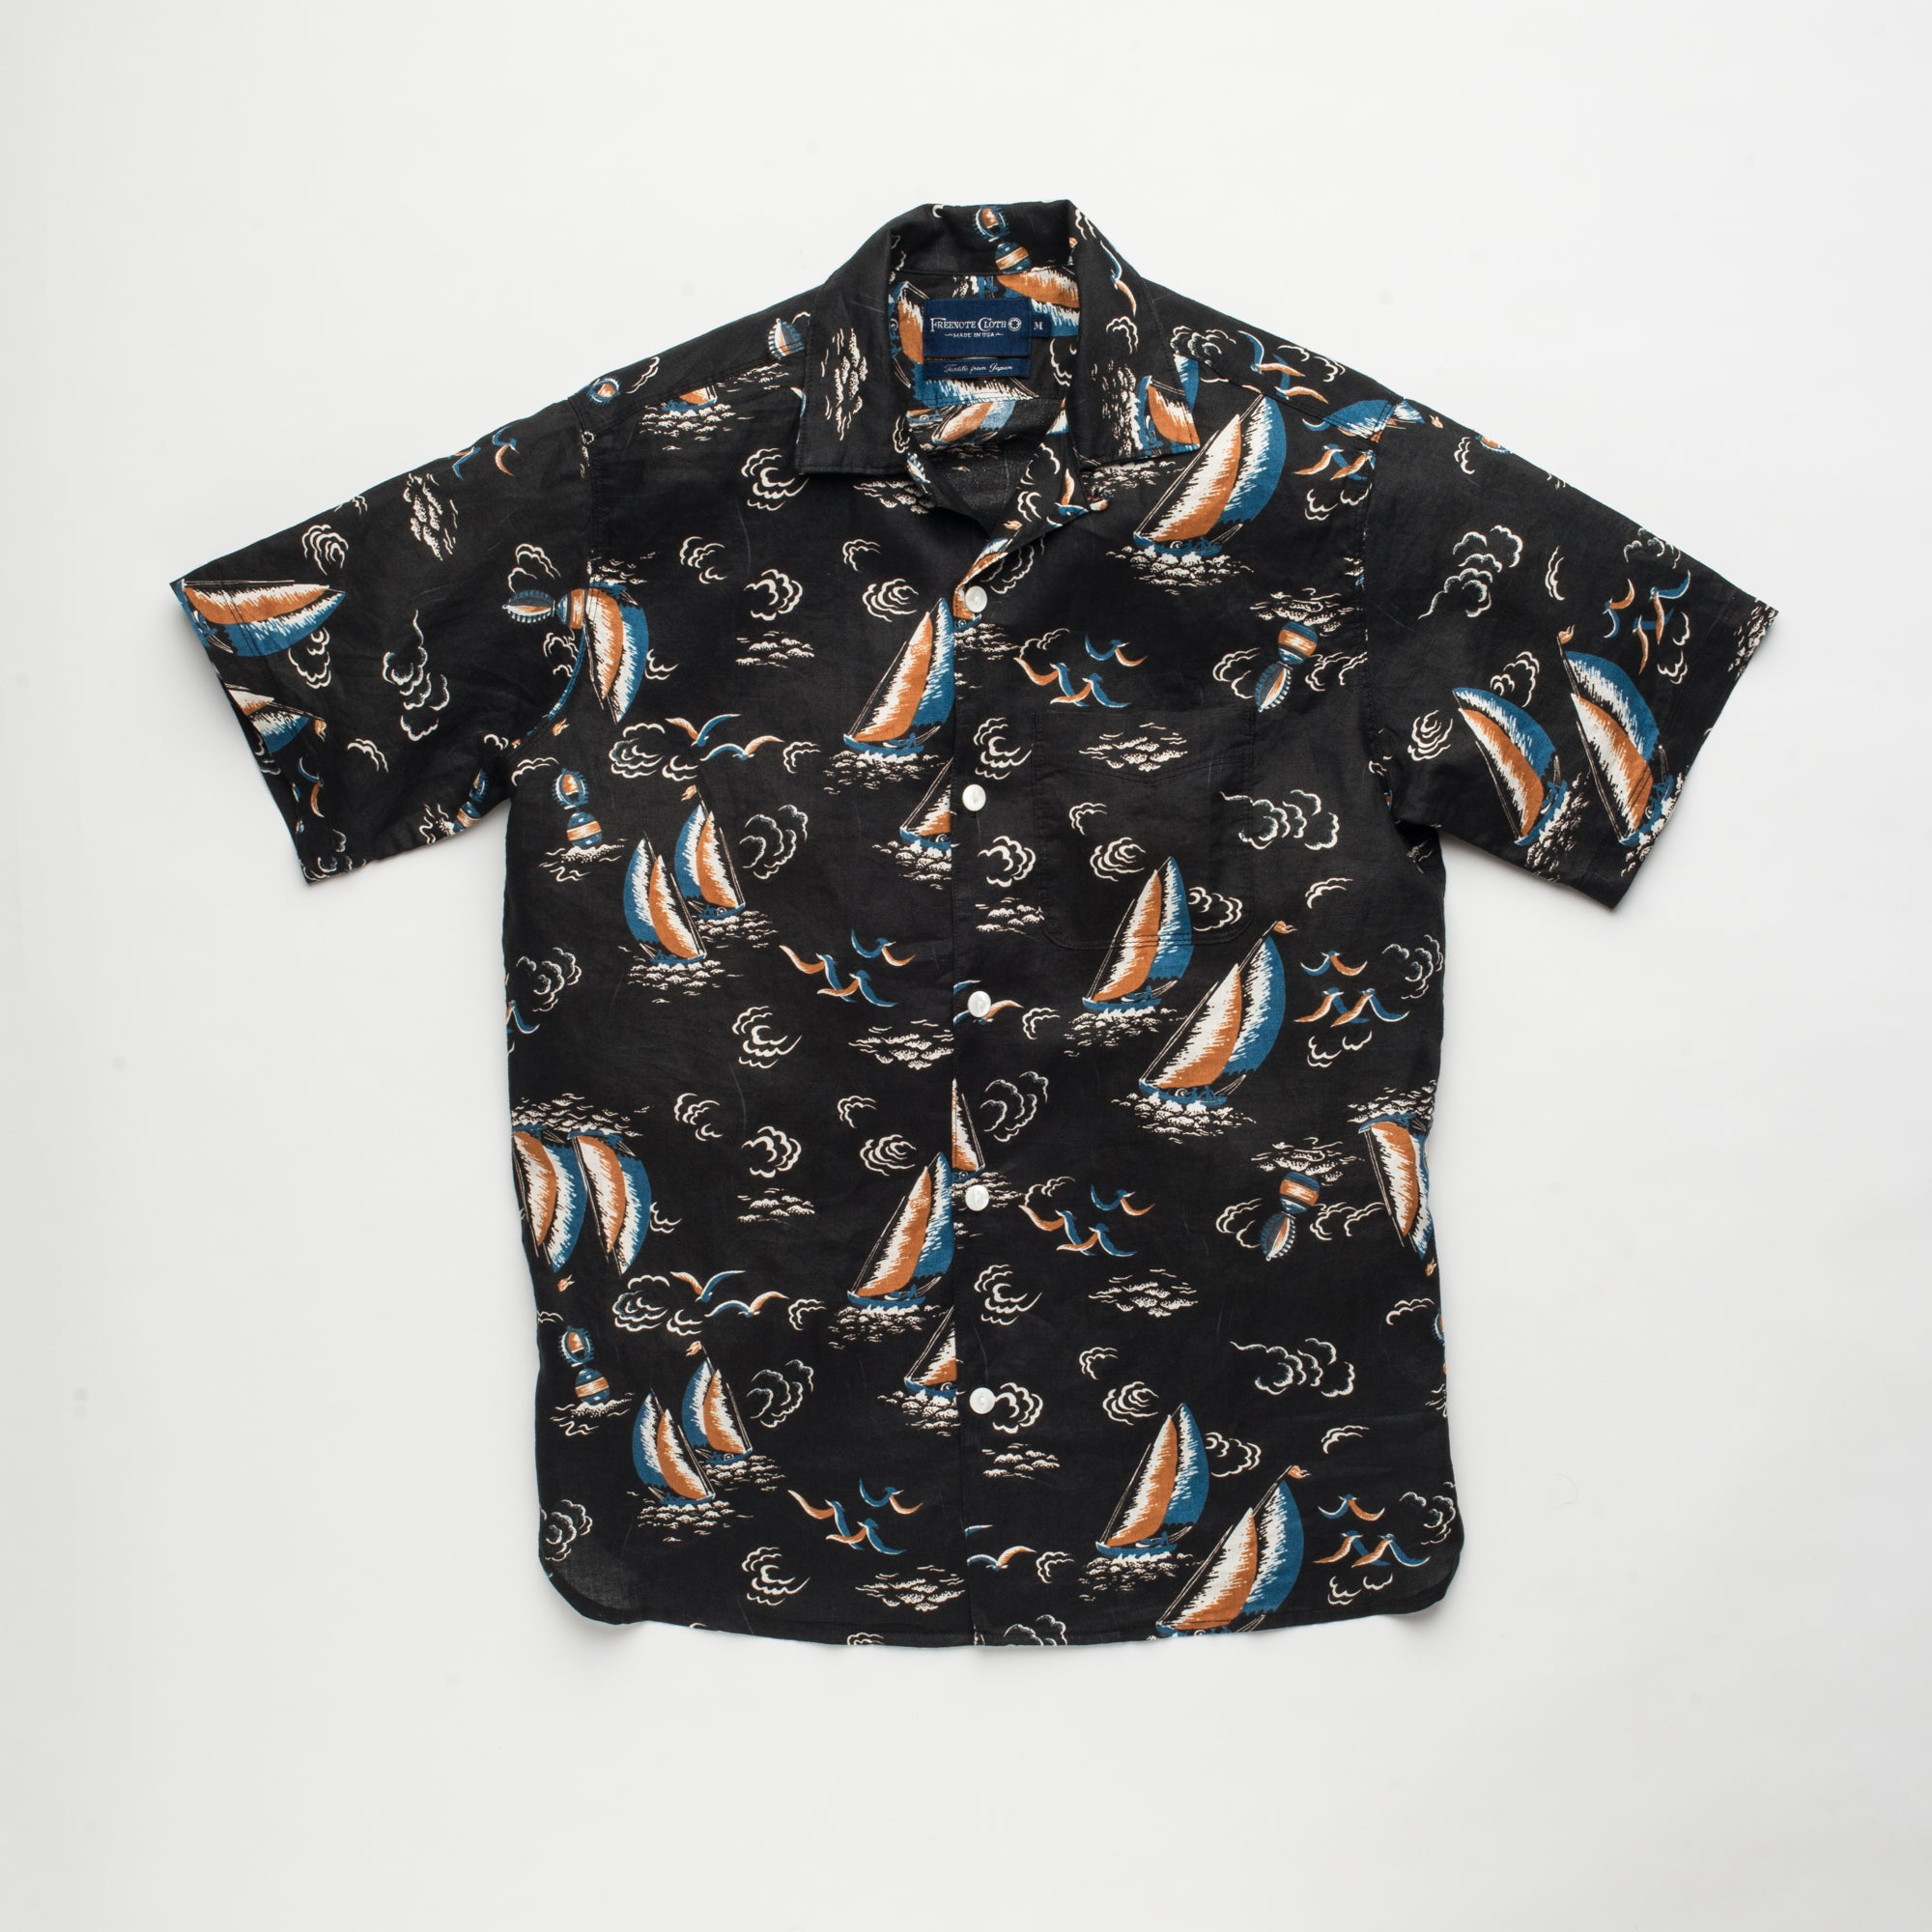 a181c2c7b3 Freenote Cloth ❘ Hawaiian Short Sleeve Woven